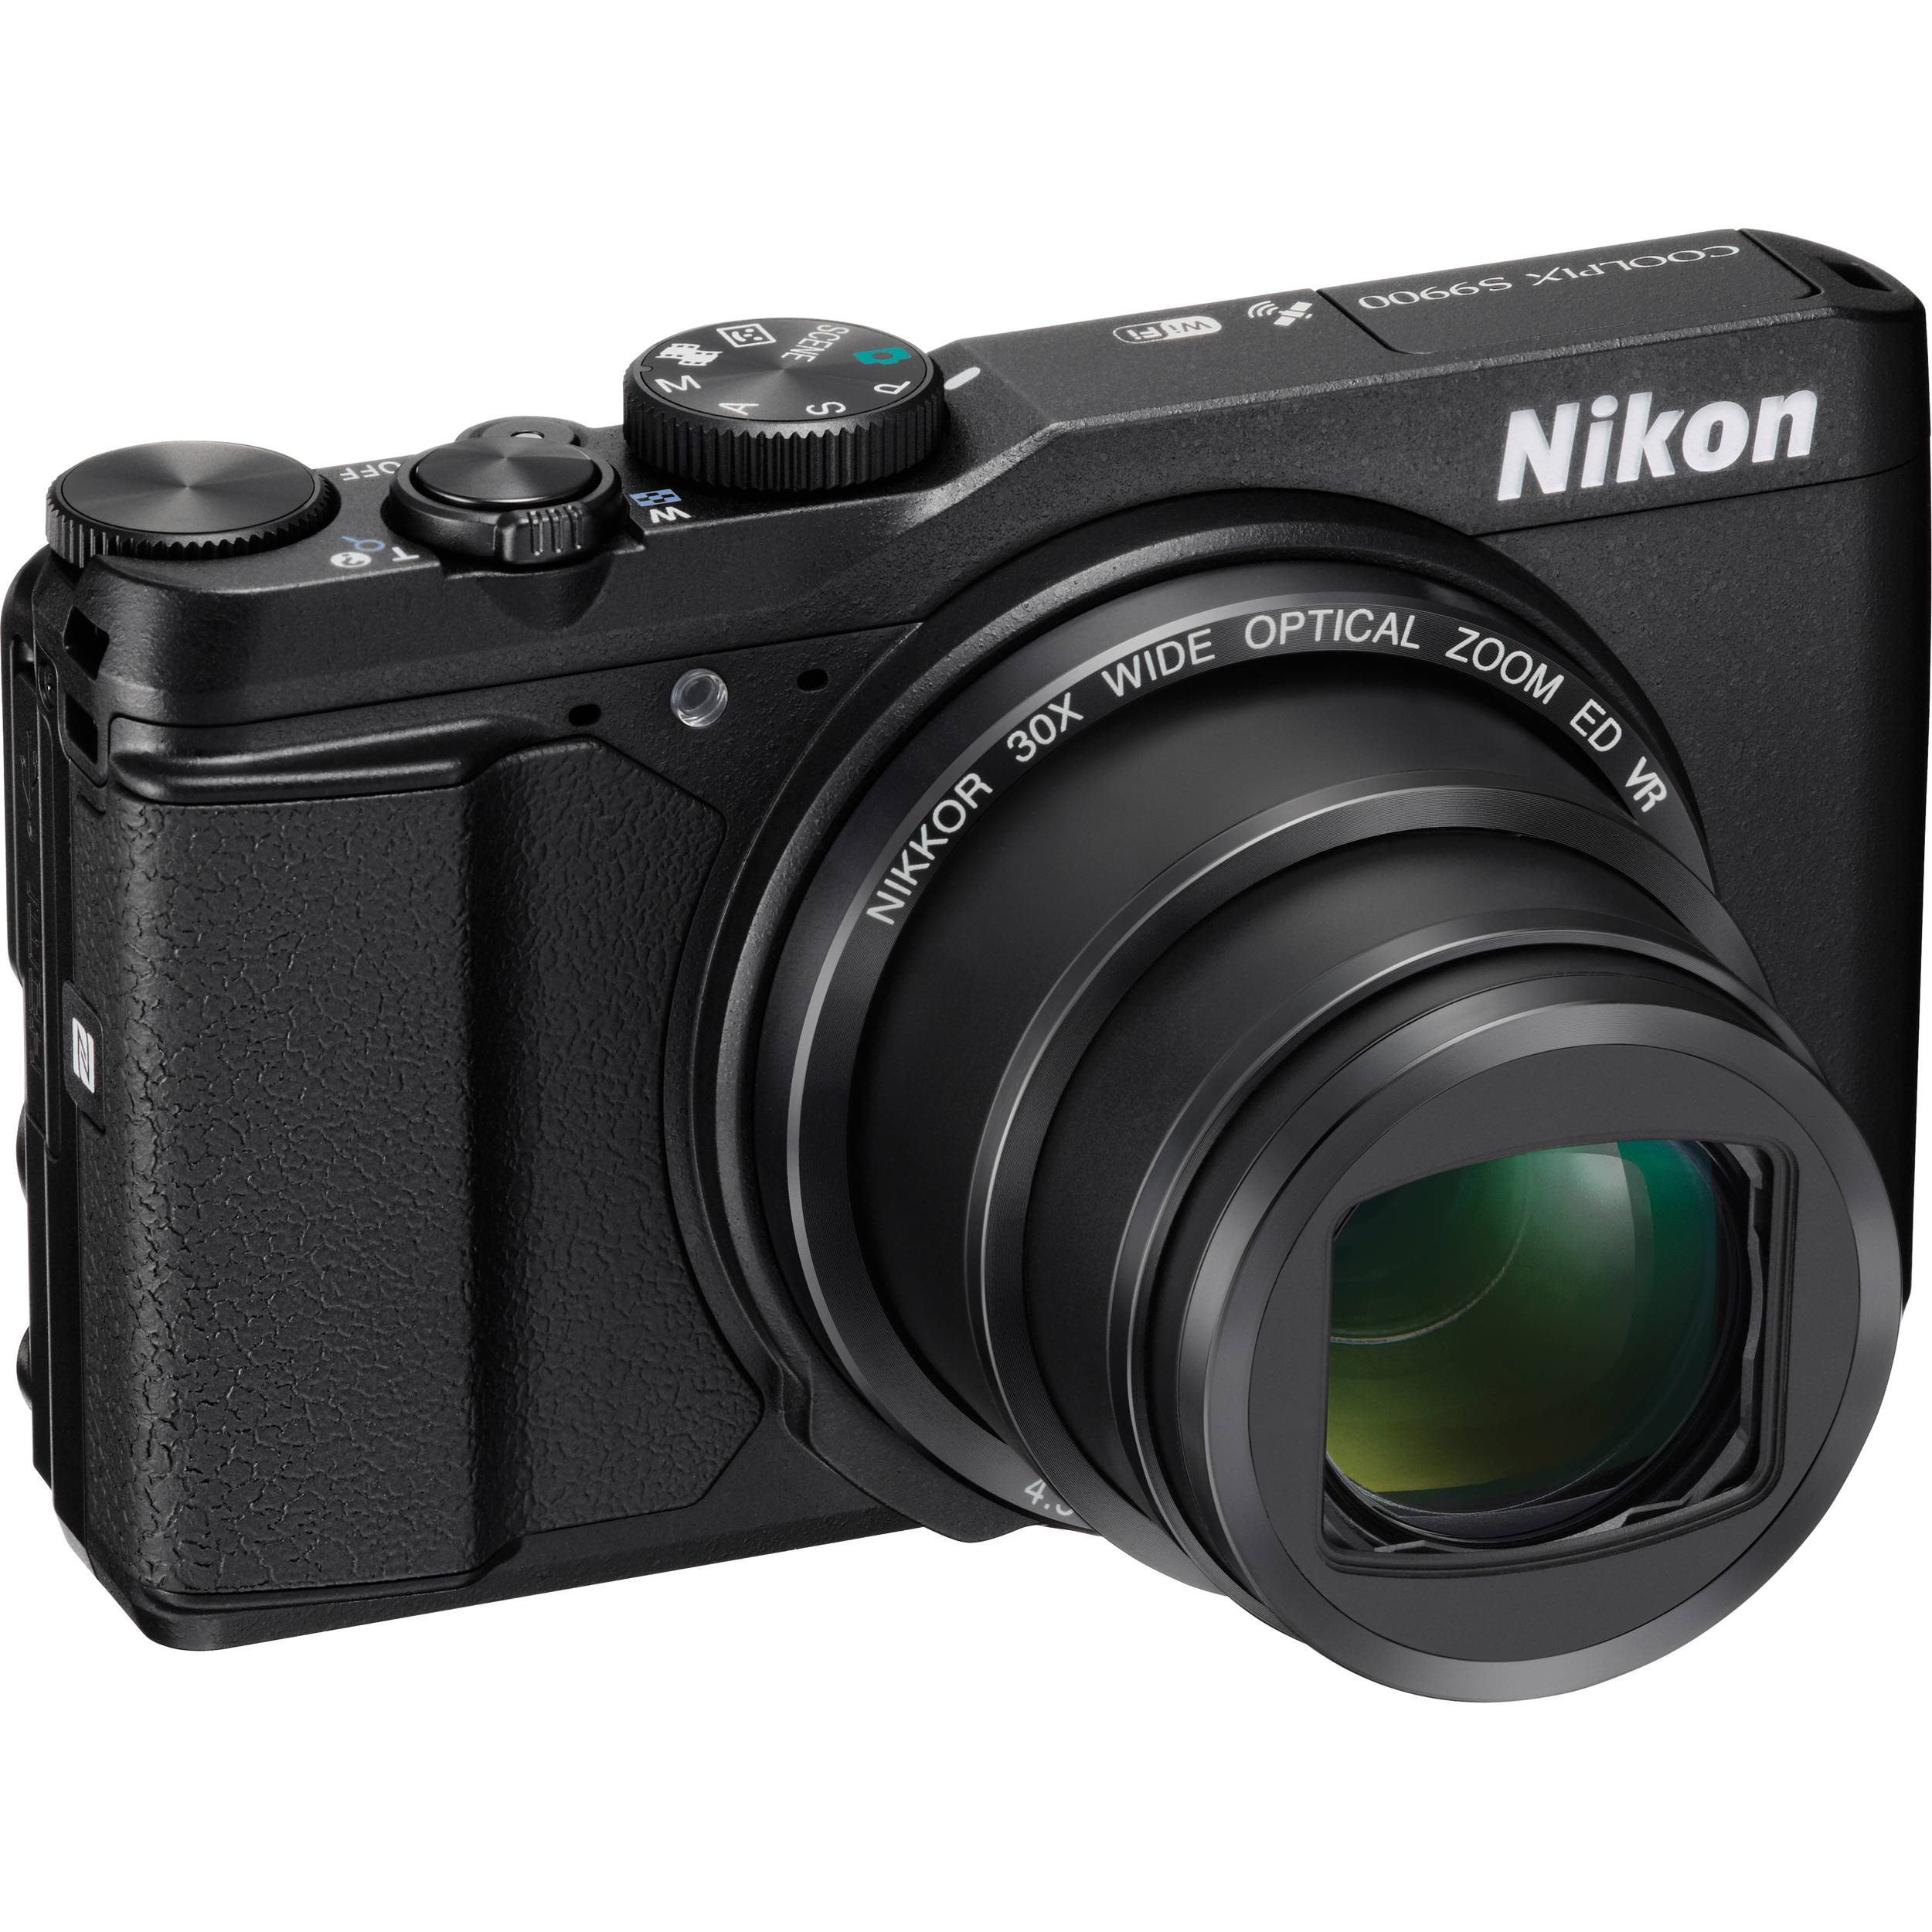 Nikon COOLPIX S9900 Camera Drivers for Windows